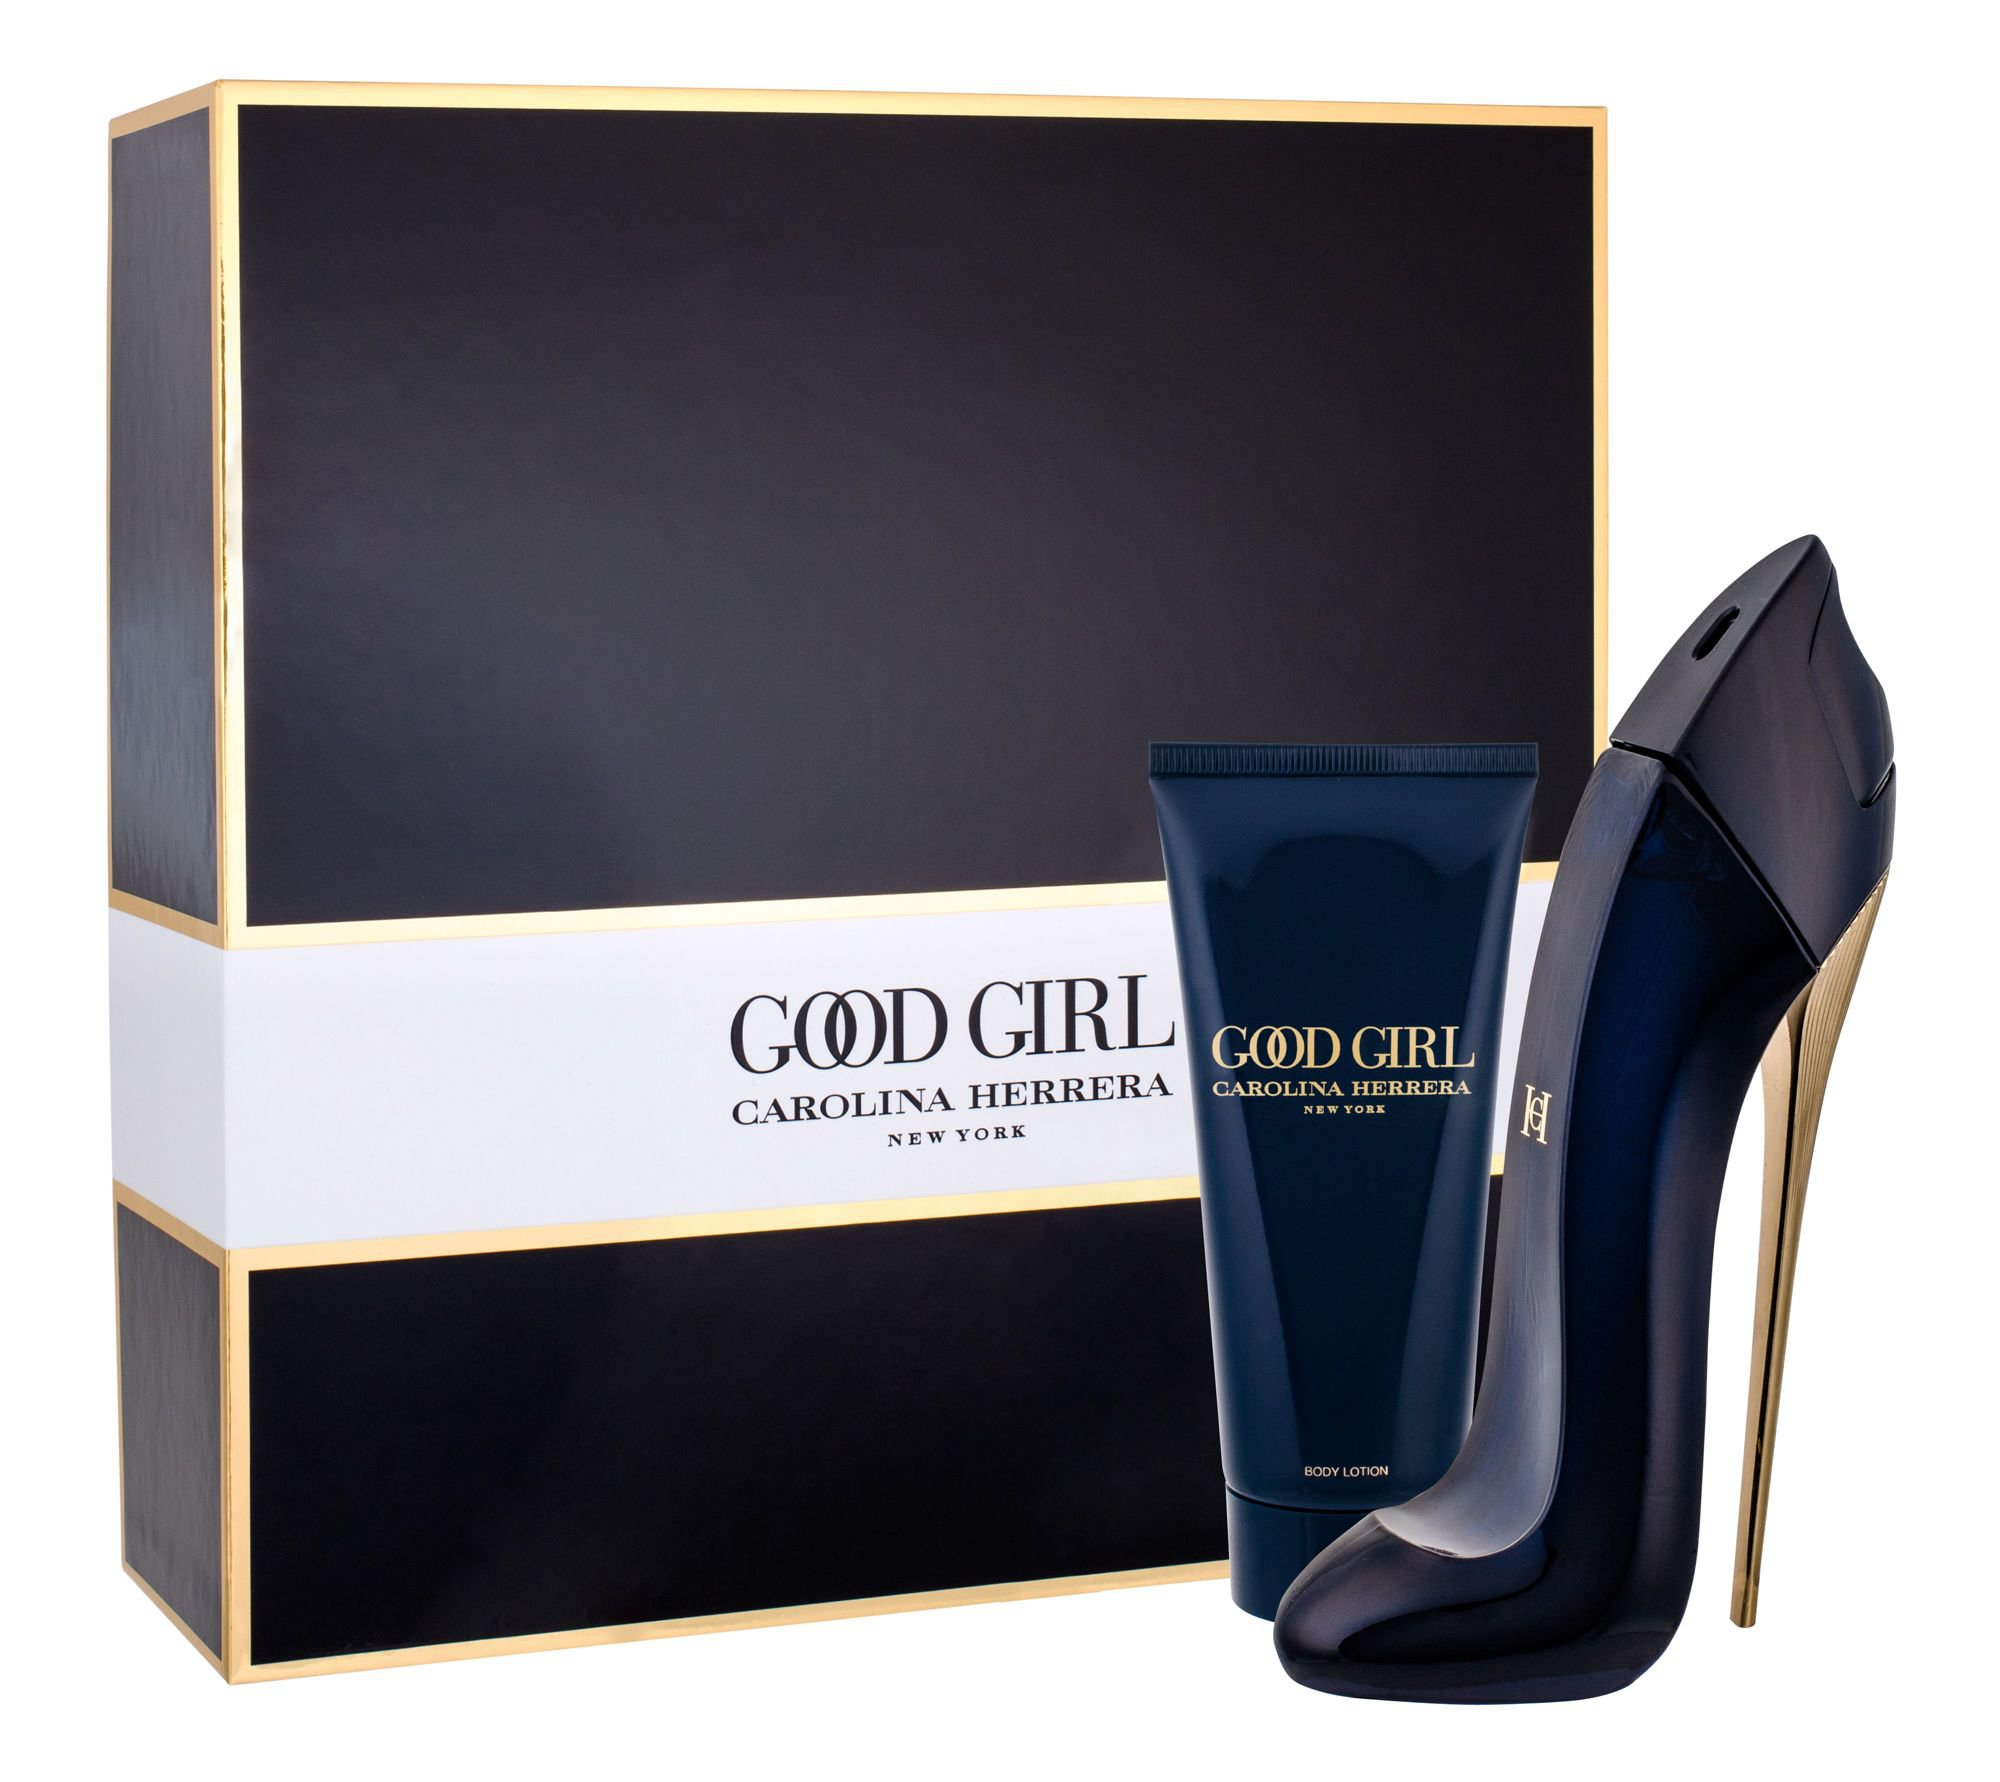 Carolina Herrera Good Girl, parfumovaná voda 80 ml + telové mlieko 100 ml